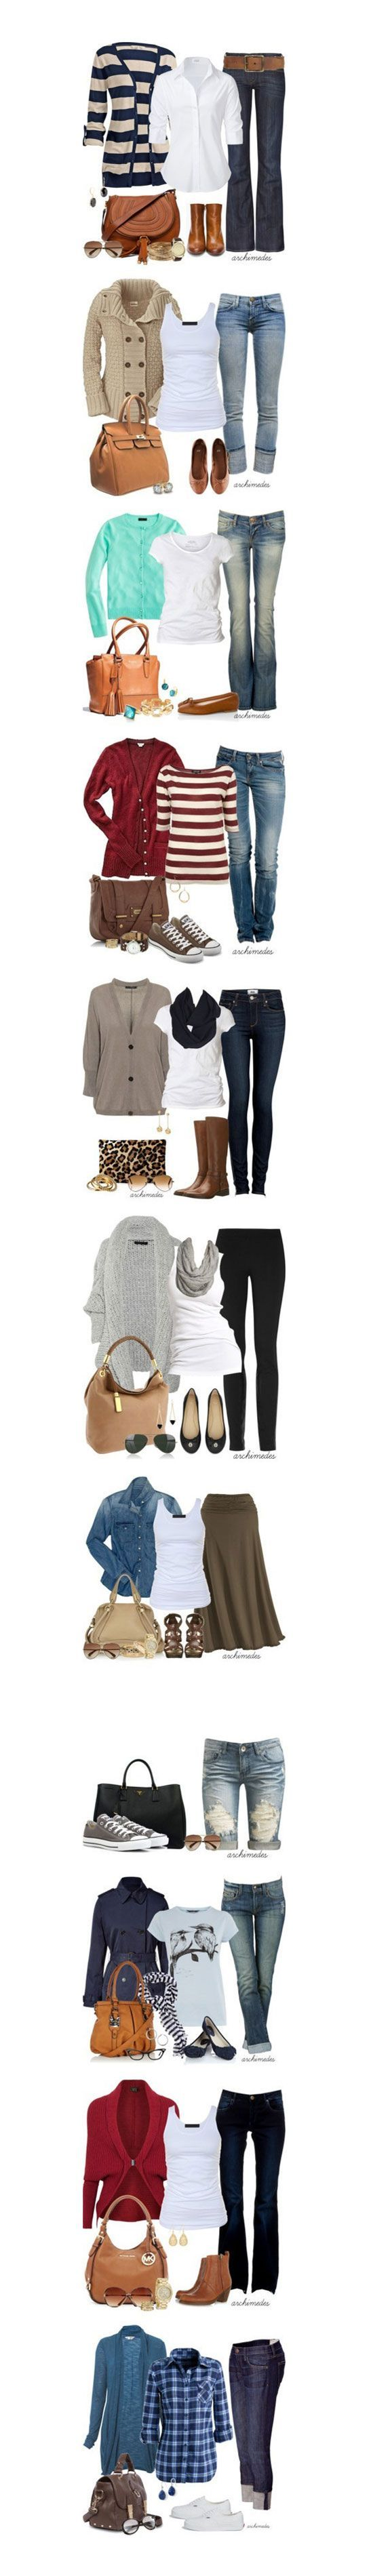 15 Casual Winter Fashion Trends Looks 2013 For Girls Women .... this would be nice wardrobe to have.